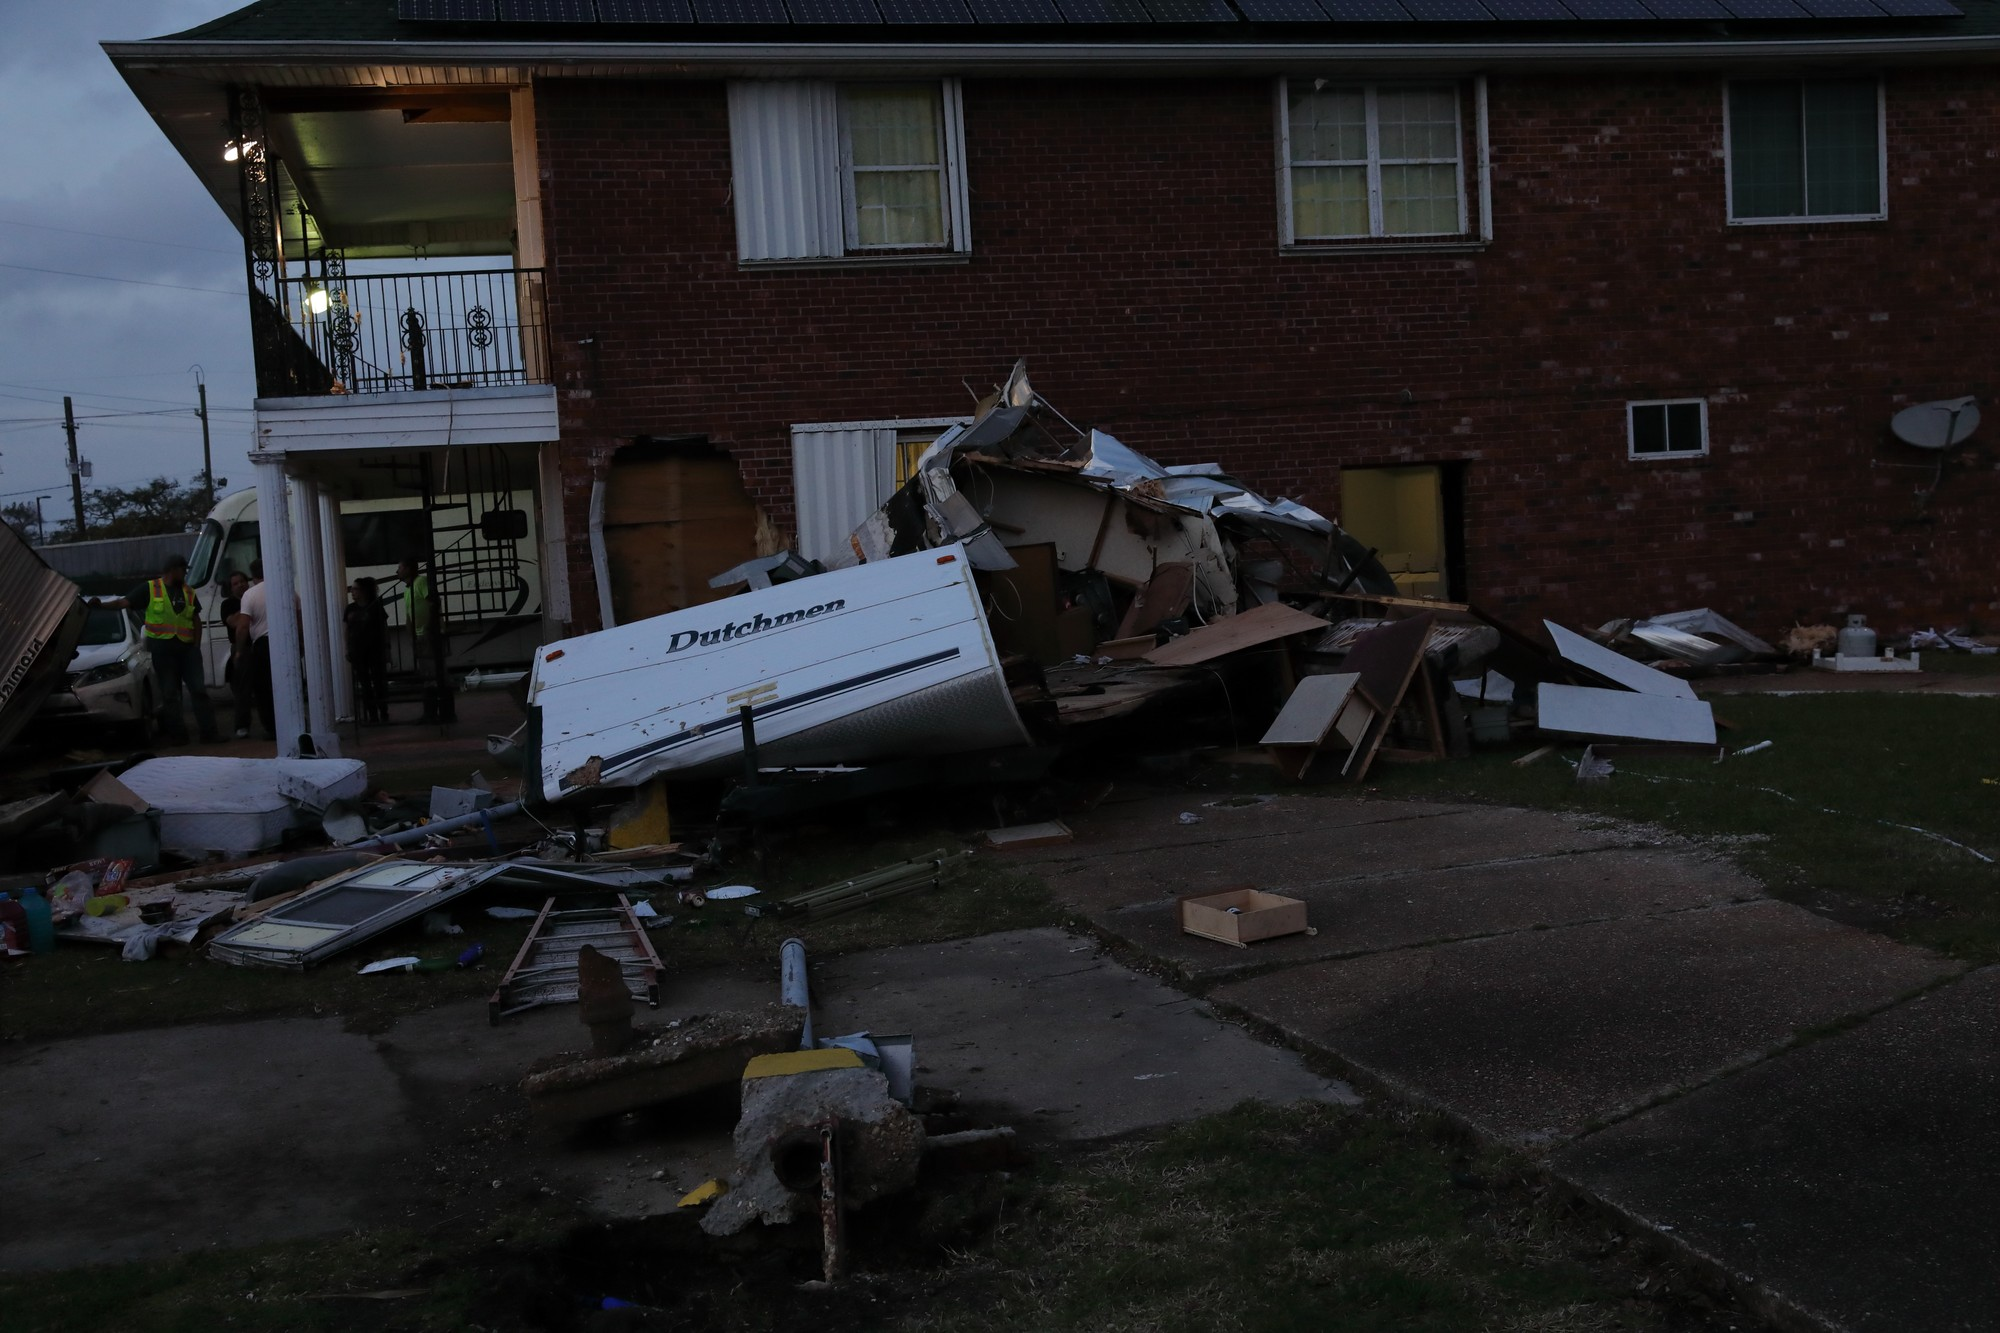 Residents+of+Parc+D%27Orleans+assess+the+aftermath+of+an+EF2+tornado+in+East+New+Orleans%2C+Louisiana%2C+Feb.+7%2C+2017.+Residents+cooperated+to+evacuate+injured+community+members+and+disconnected+propane+lines+as+a+precationary+measure.+Photo+credit%3A+Osama+Ayyad